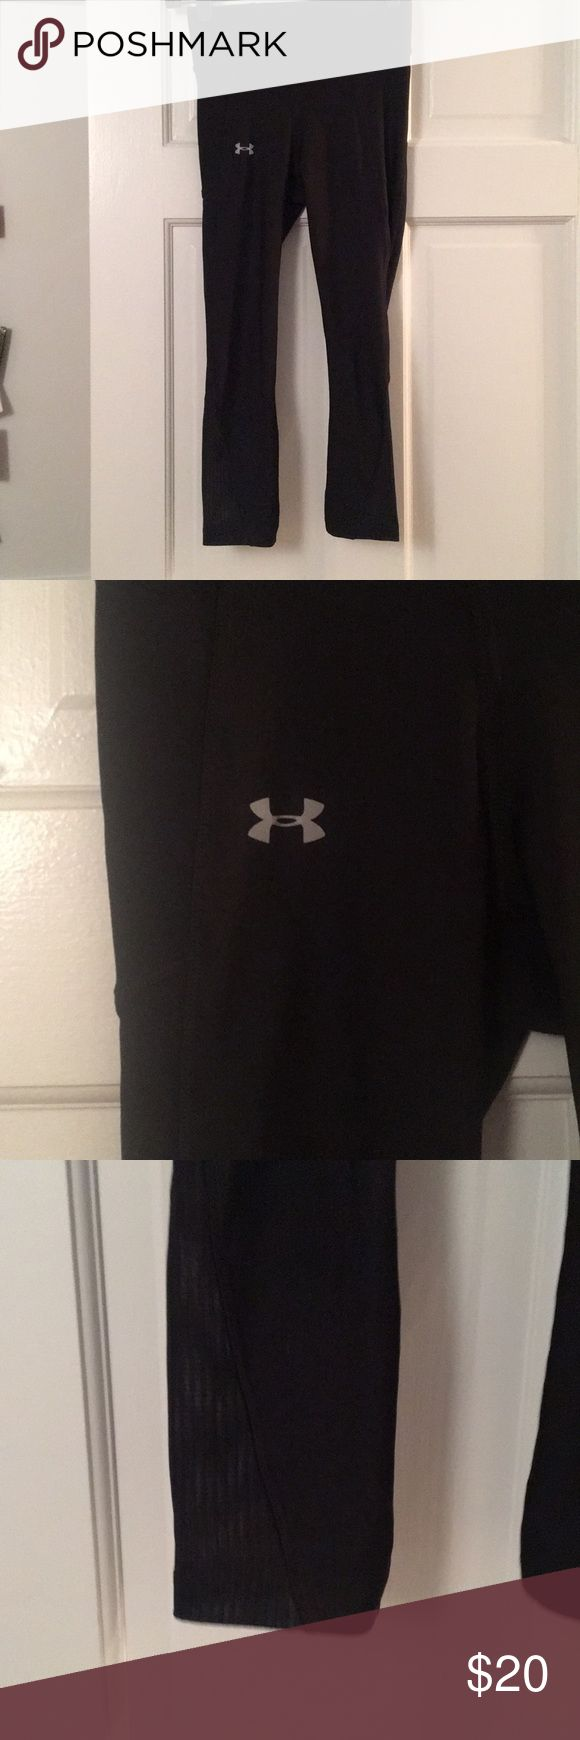 Under Armour Women's Capri Leggings Extra small under armour Capri leggings. Mesh material around the calfs. Worn once Under Armour Pants Leggings